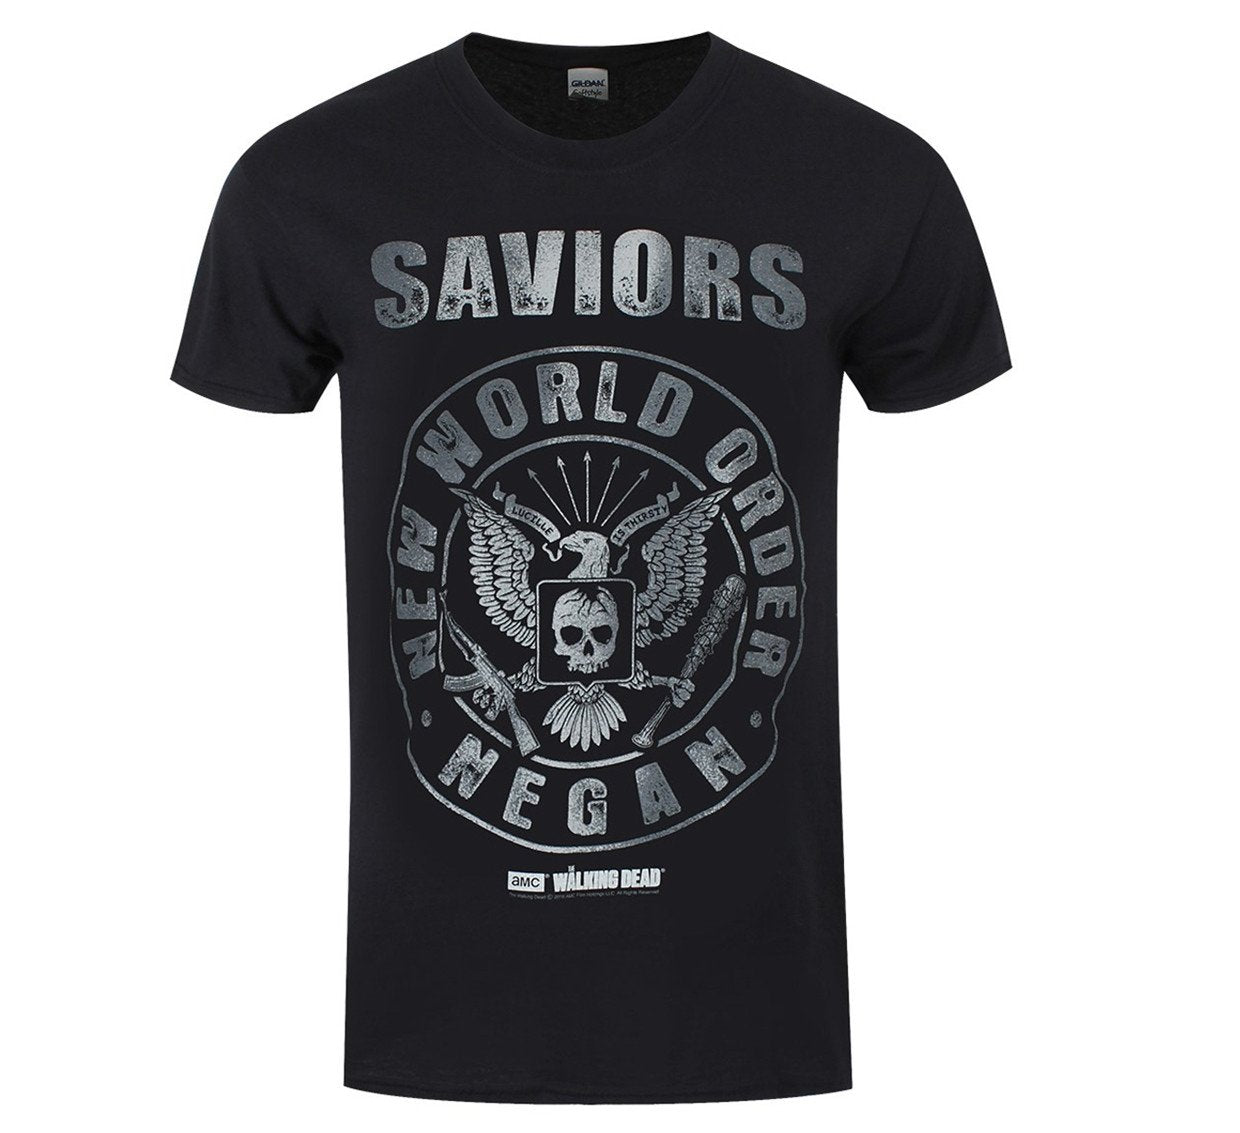 Saviors T-shirt (Walking Dead)